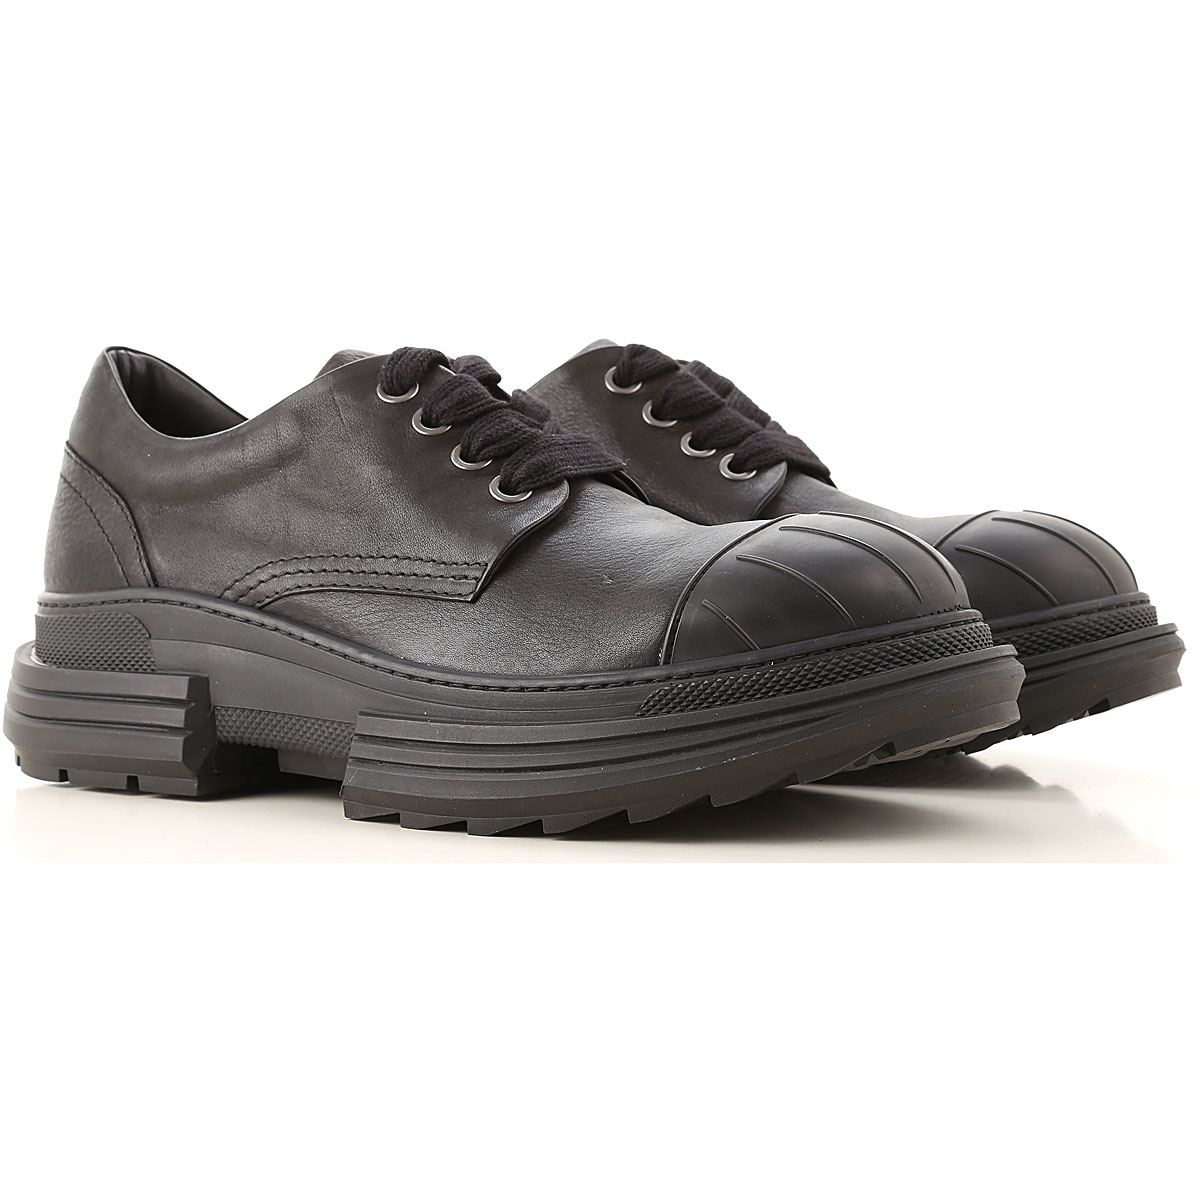 Beyond Lace Up Shoes for Men Oxfords Derbies and Brogues USA - GOOFASH